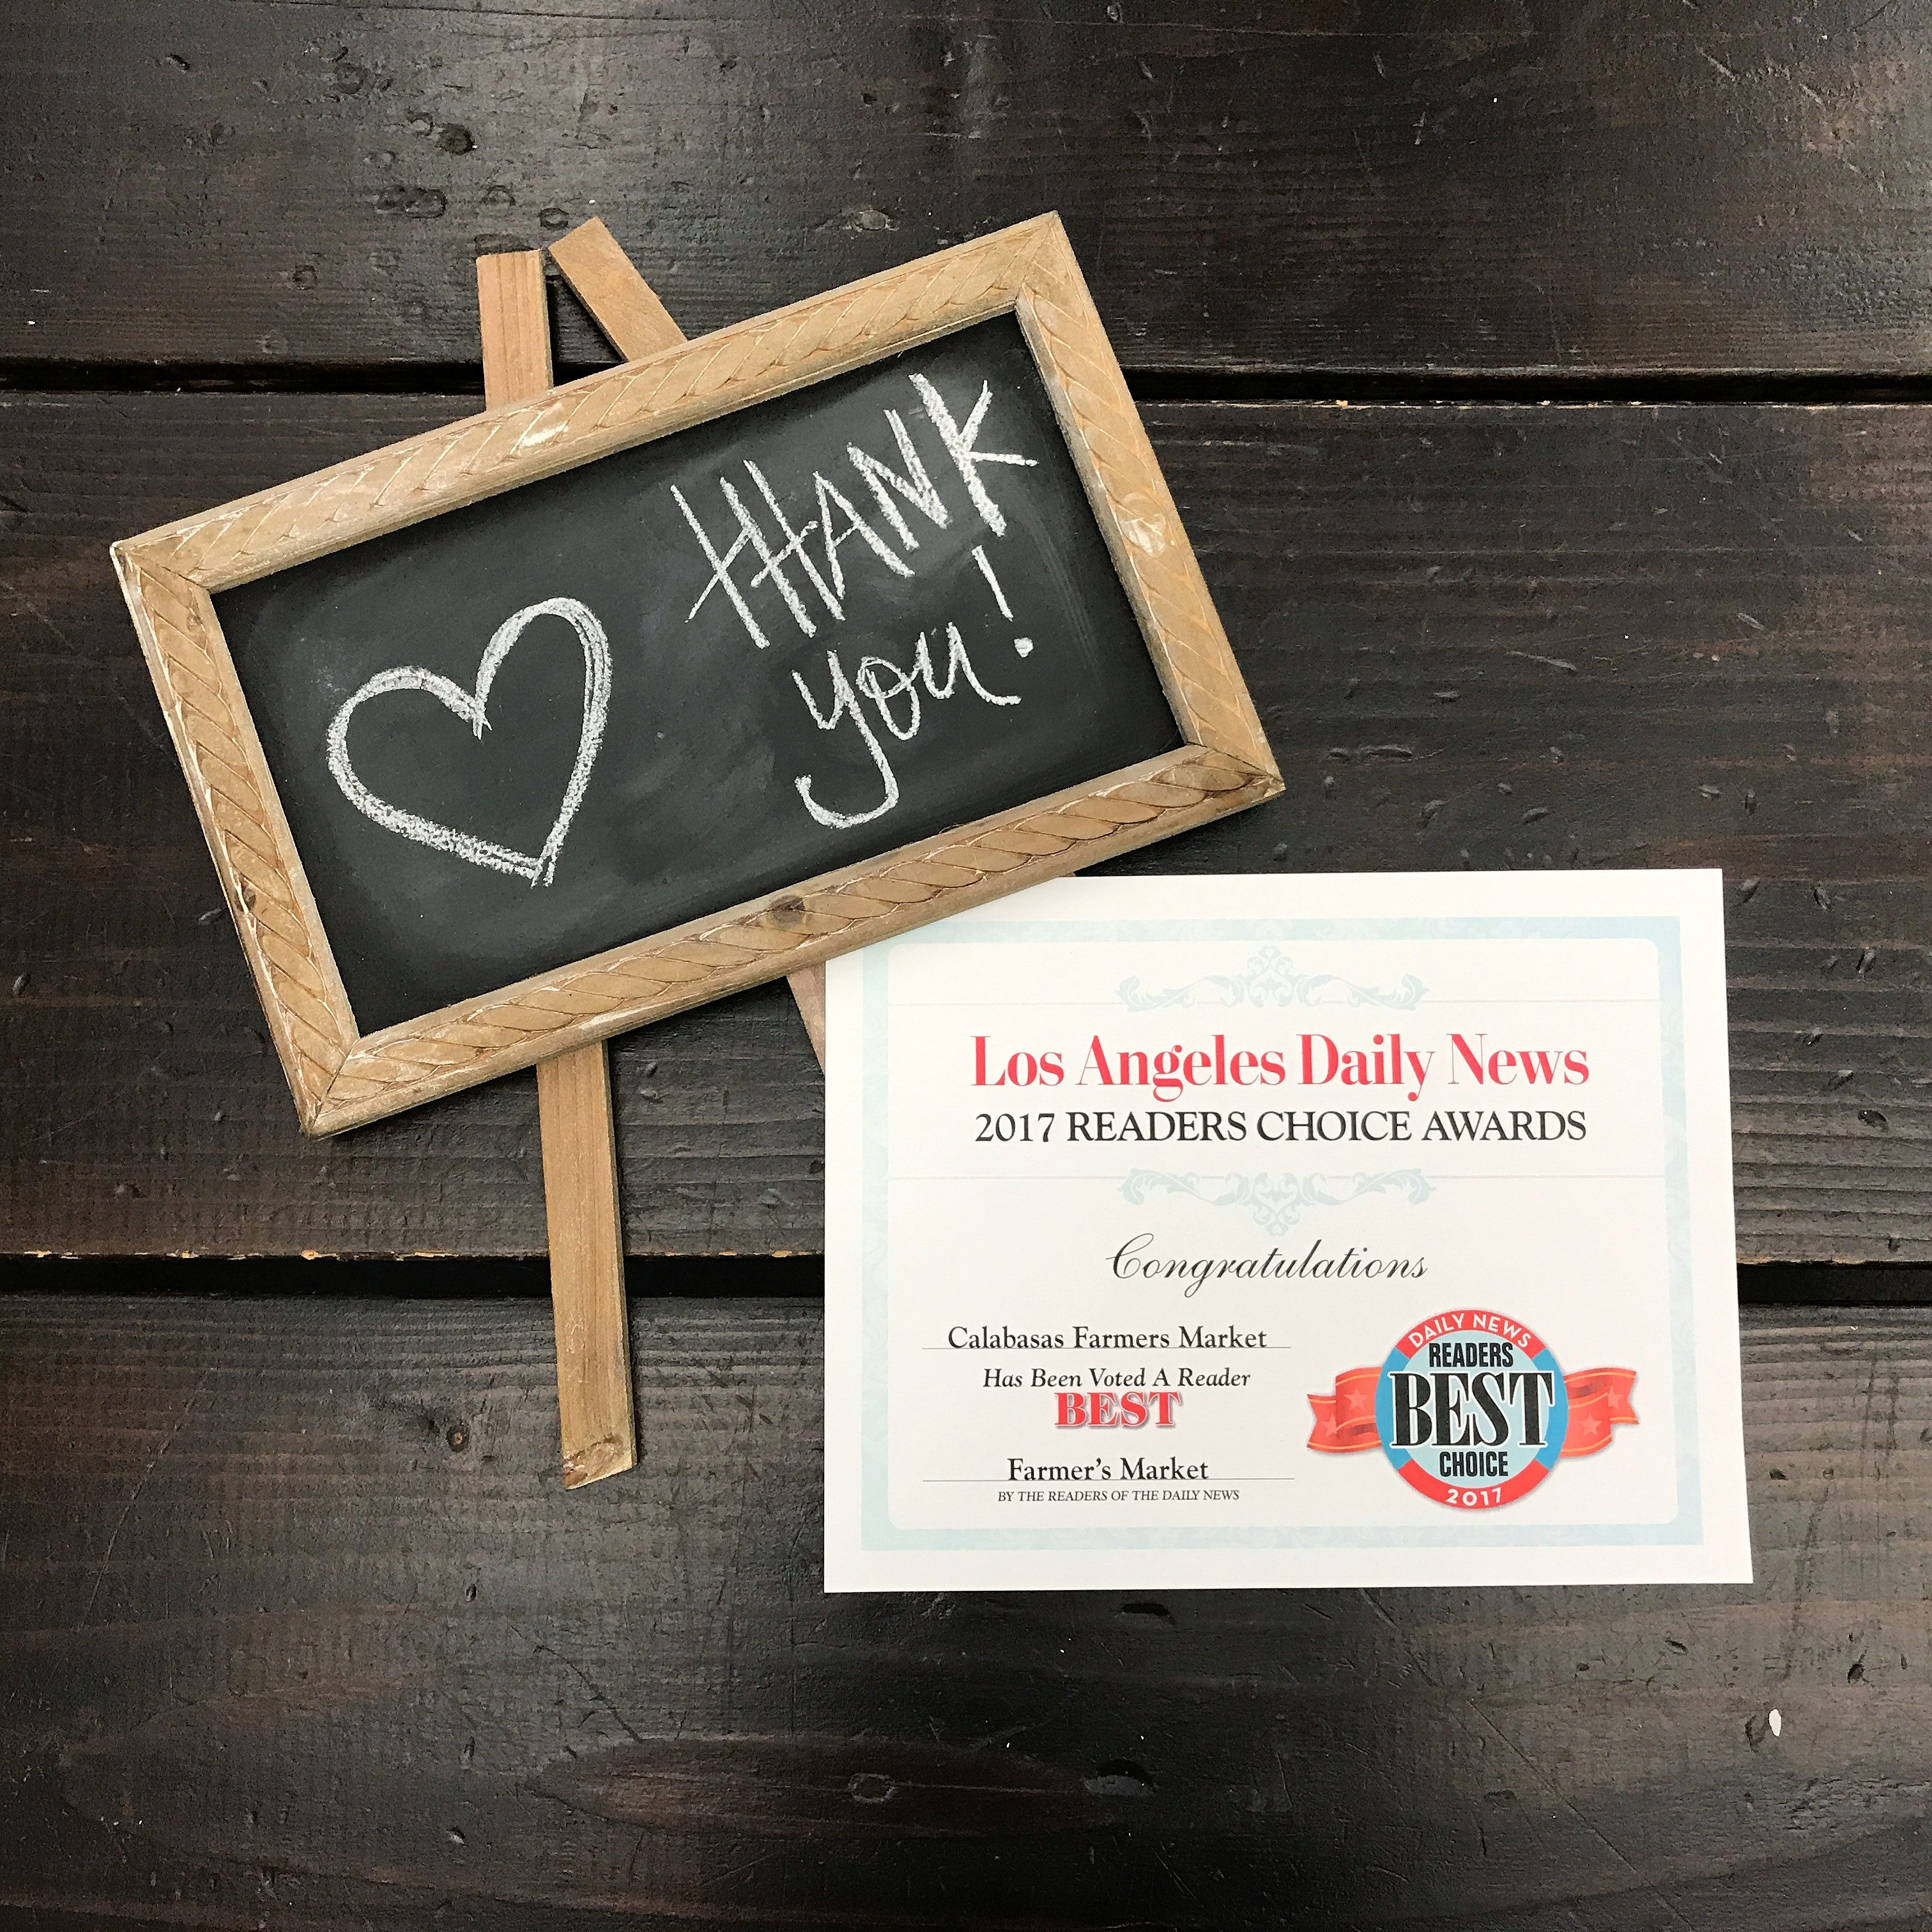 Thank you Los Angeles Daily News! | CCFM Blog